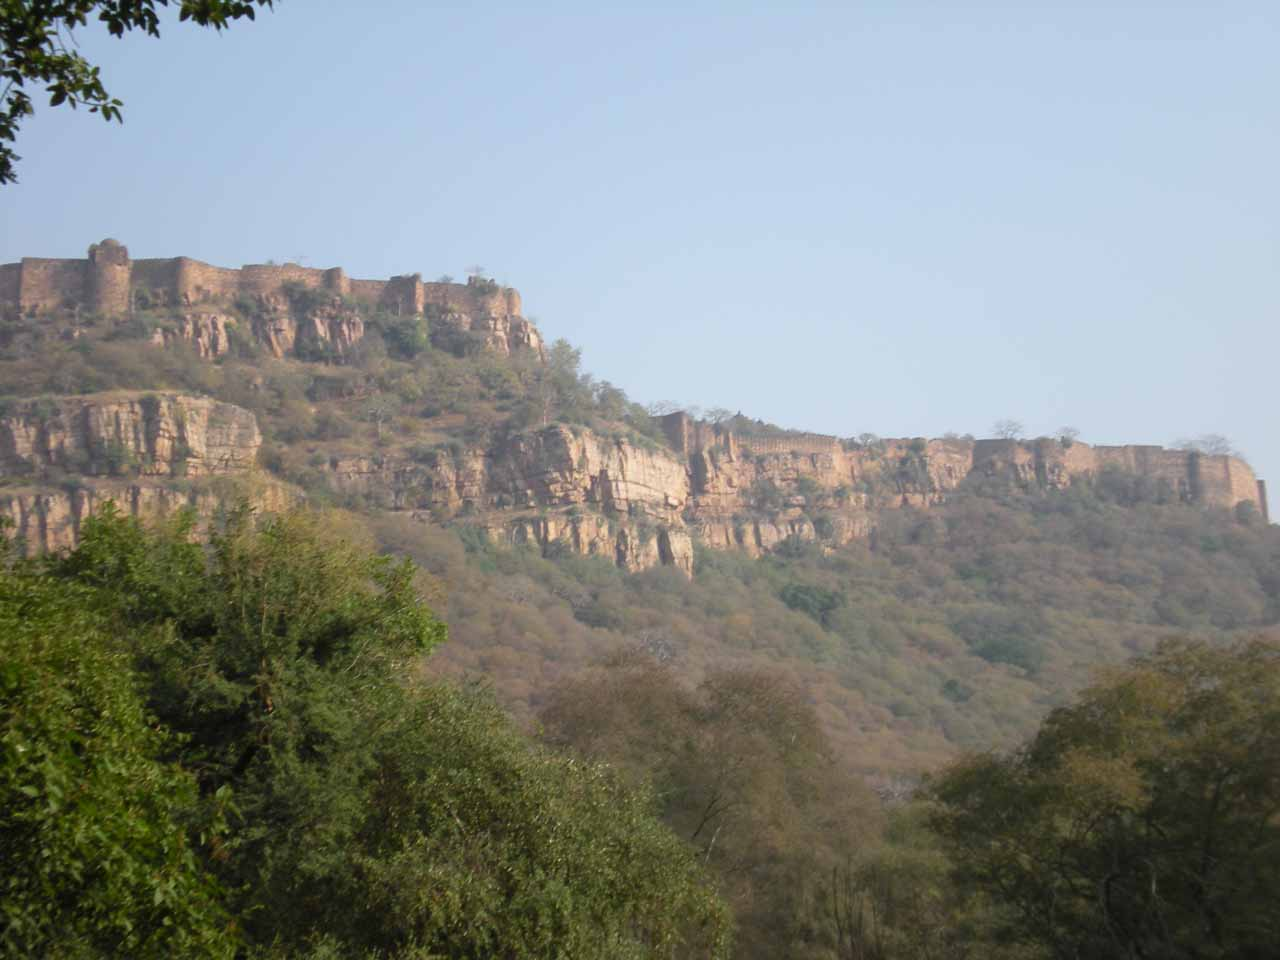 Ranthambore Fort in zone 2